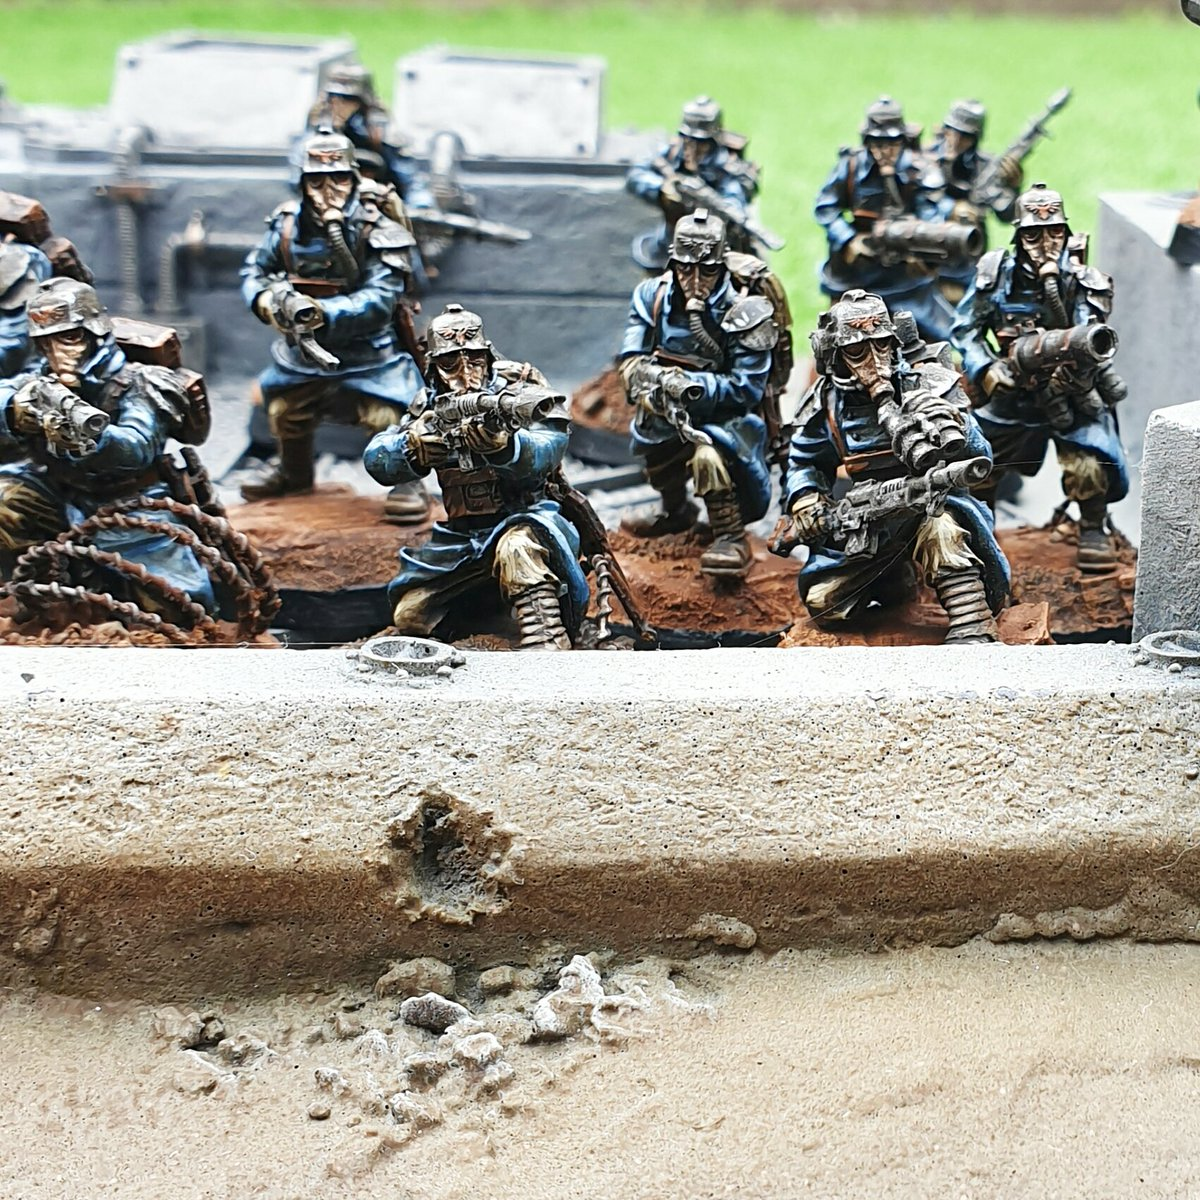 1st squads complete on the #deathkorpsofkrieg complete, hoping for updated rules for 9th edition #warhammer40k  will my prayers be answered @WarComTeam https://t.co/aoklJRxBsJ